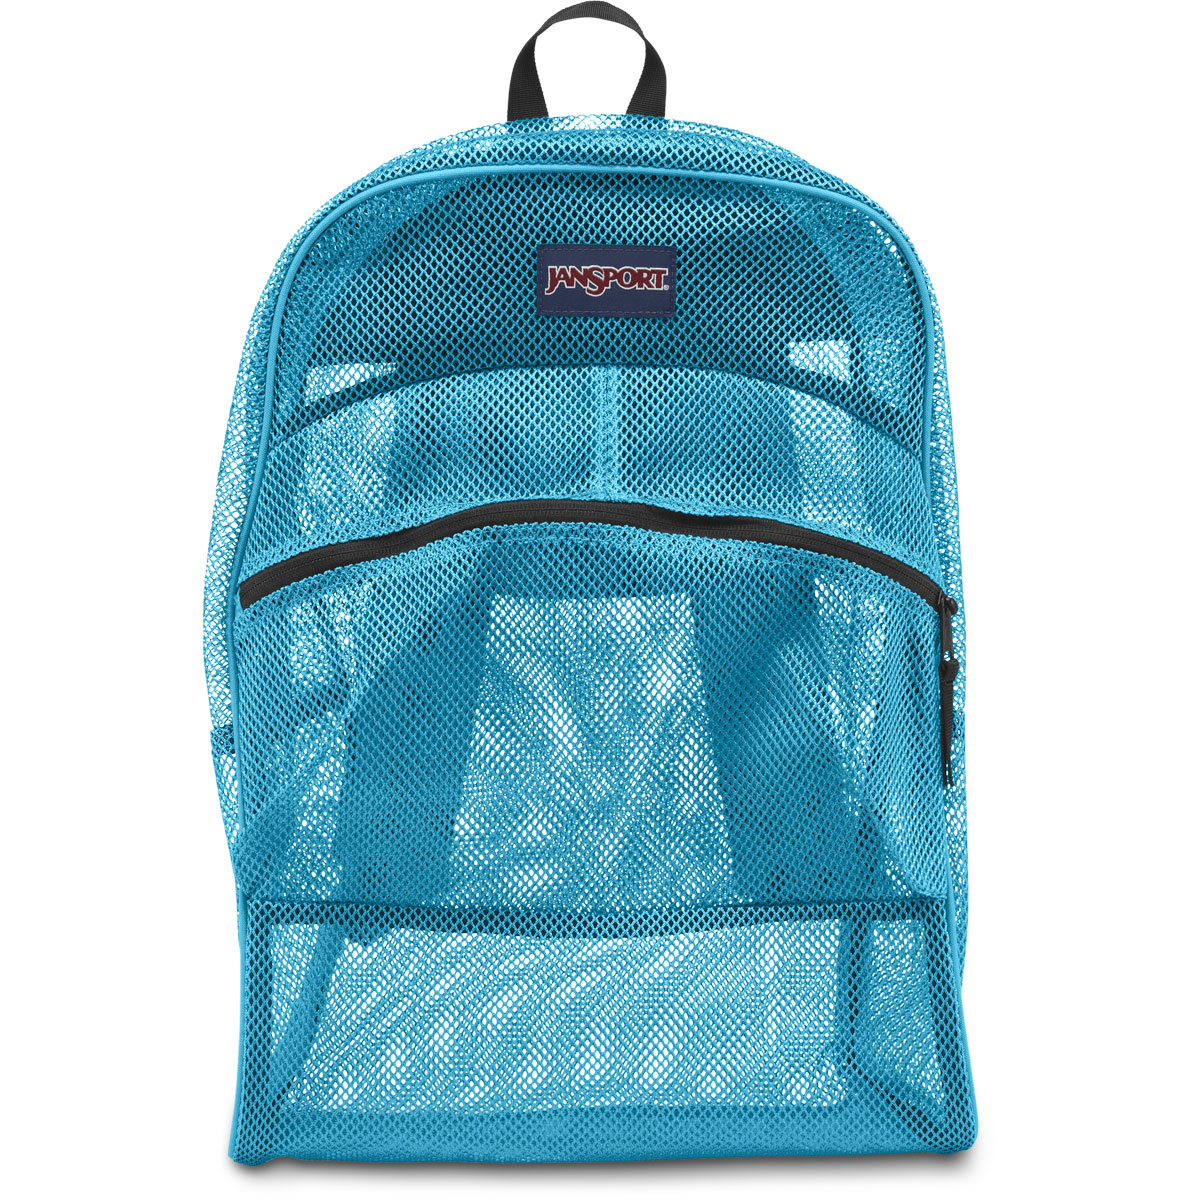 JanSport Mesh Pack School Backpack - Blue Crest - Fantasyard ...